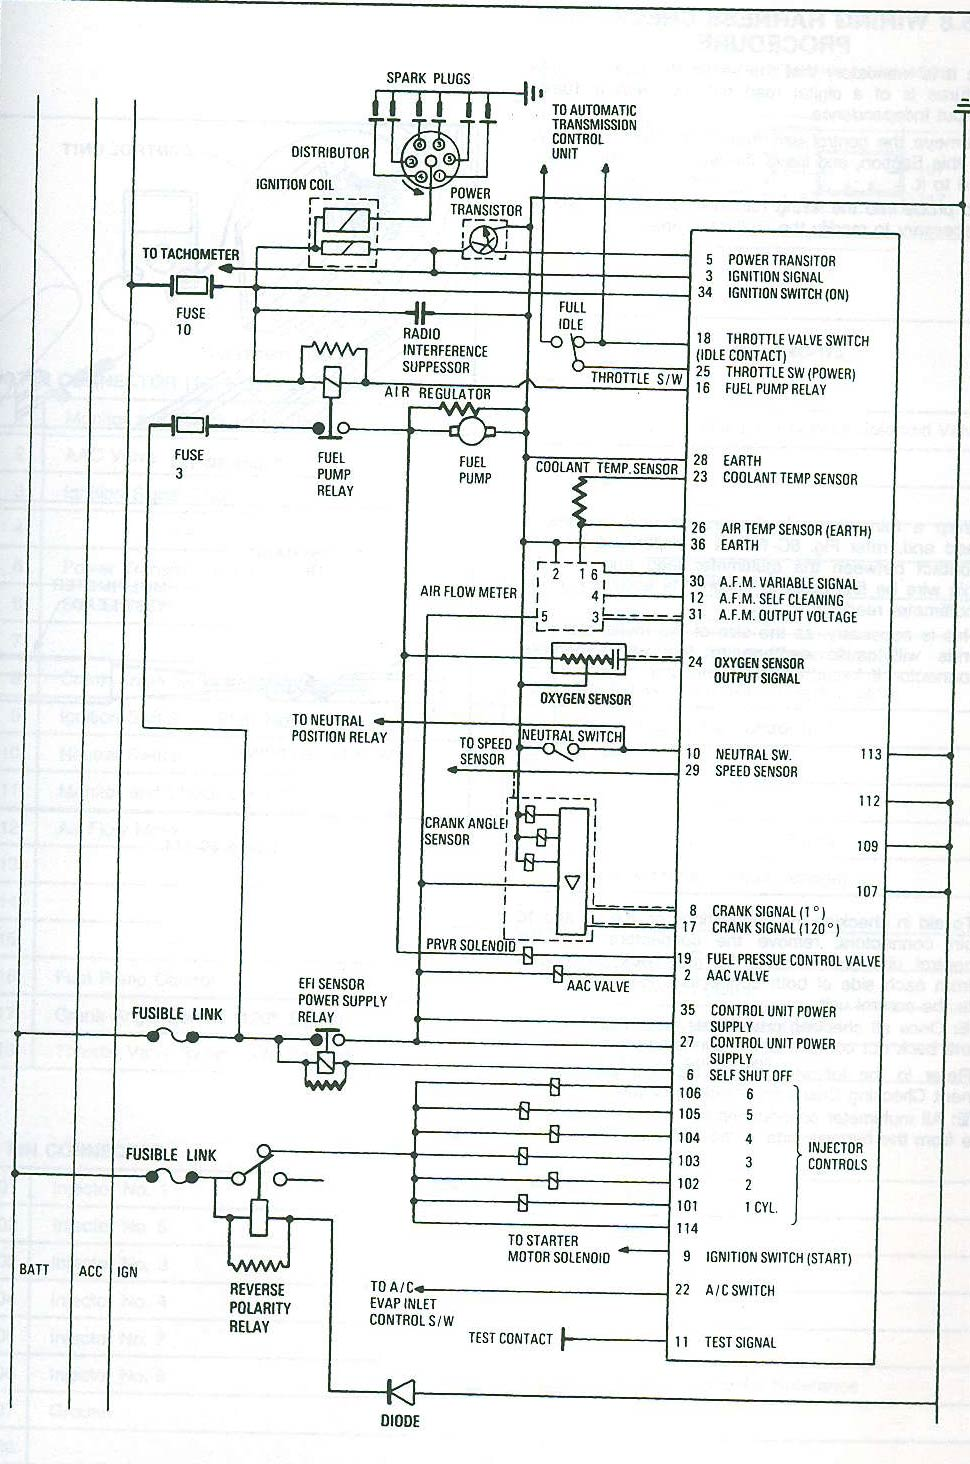 small resolution of suzuki jimny ecu wiring diagram wiring librarysuzuki jimny ecu wiring diagram